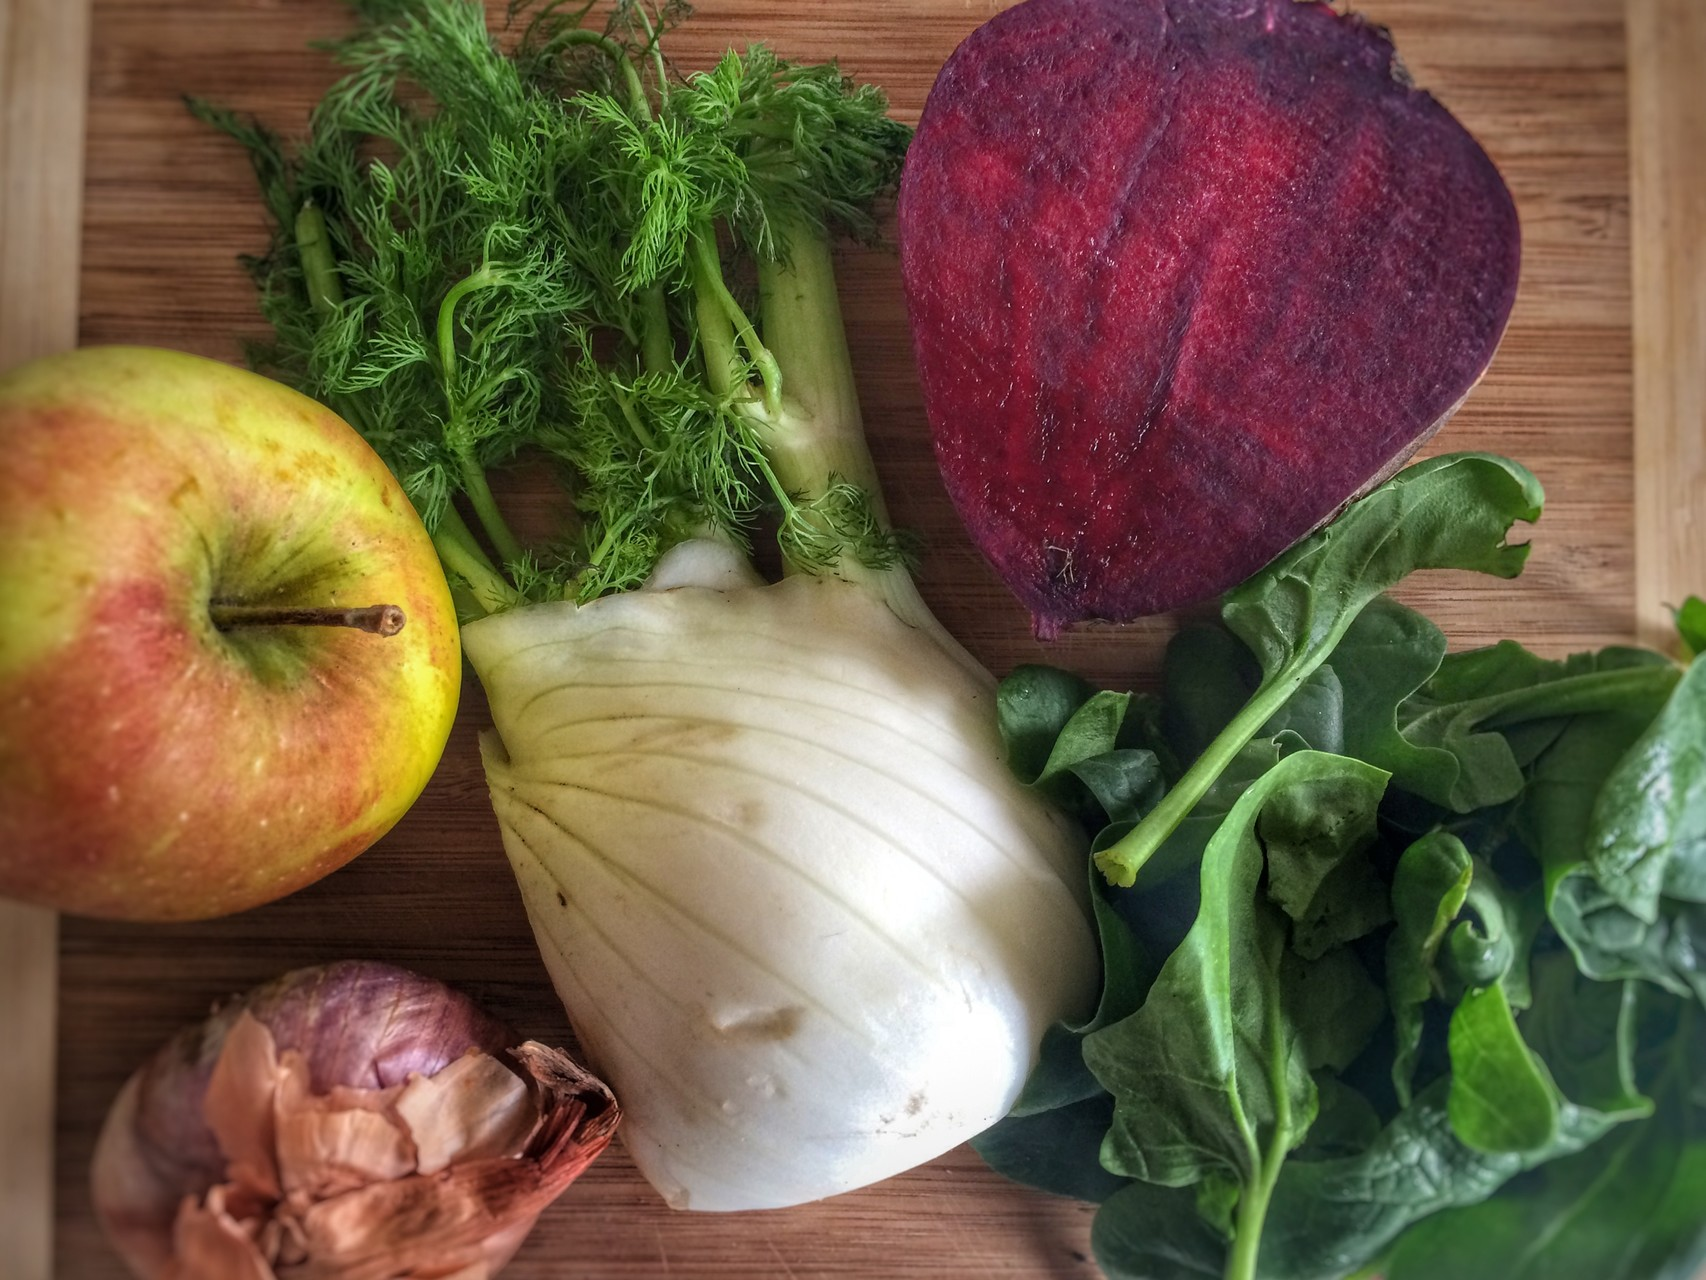 Rote Beete, Fenchel, Apfel, Spinat - mycleanlife